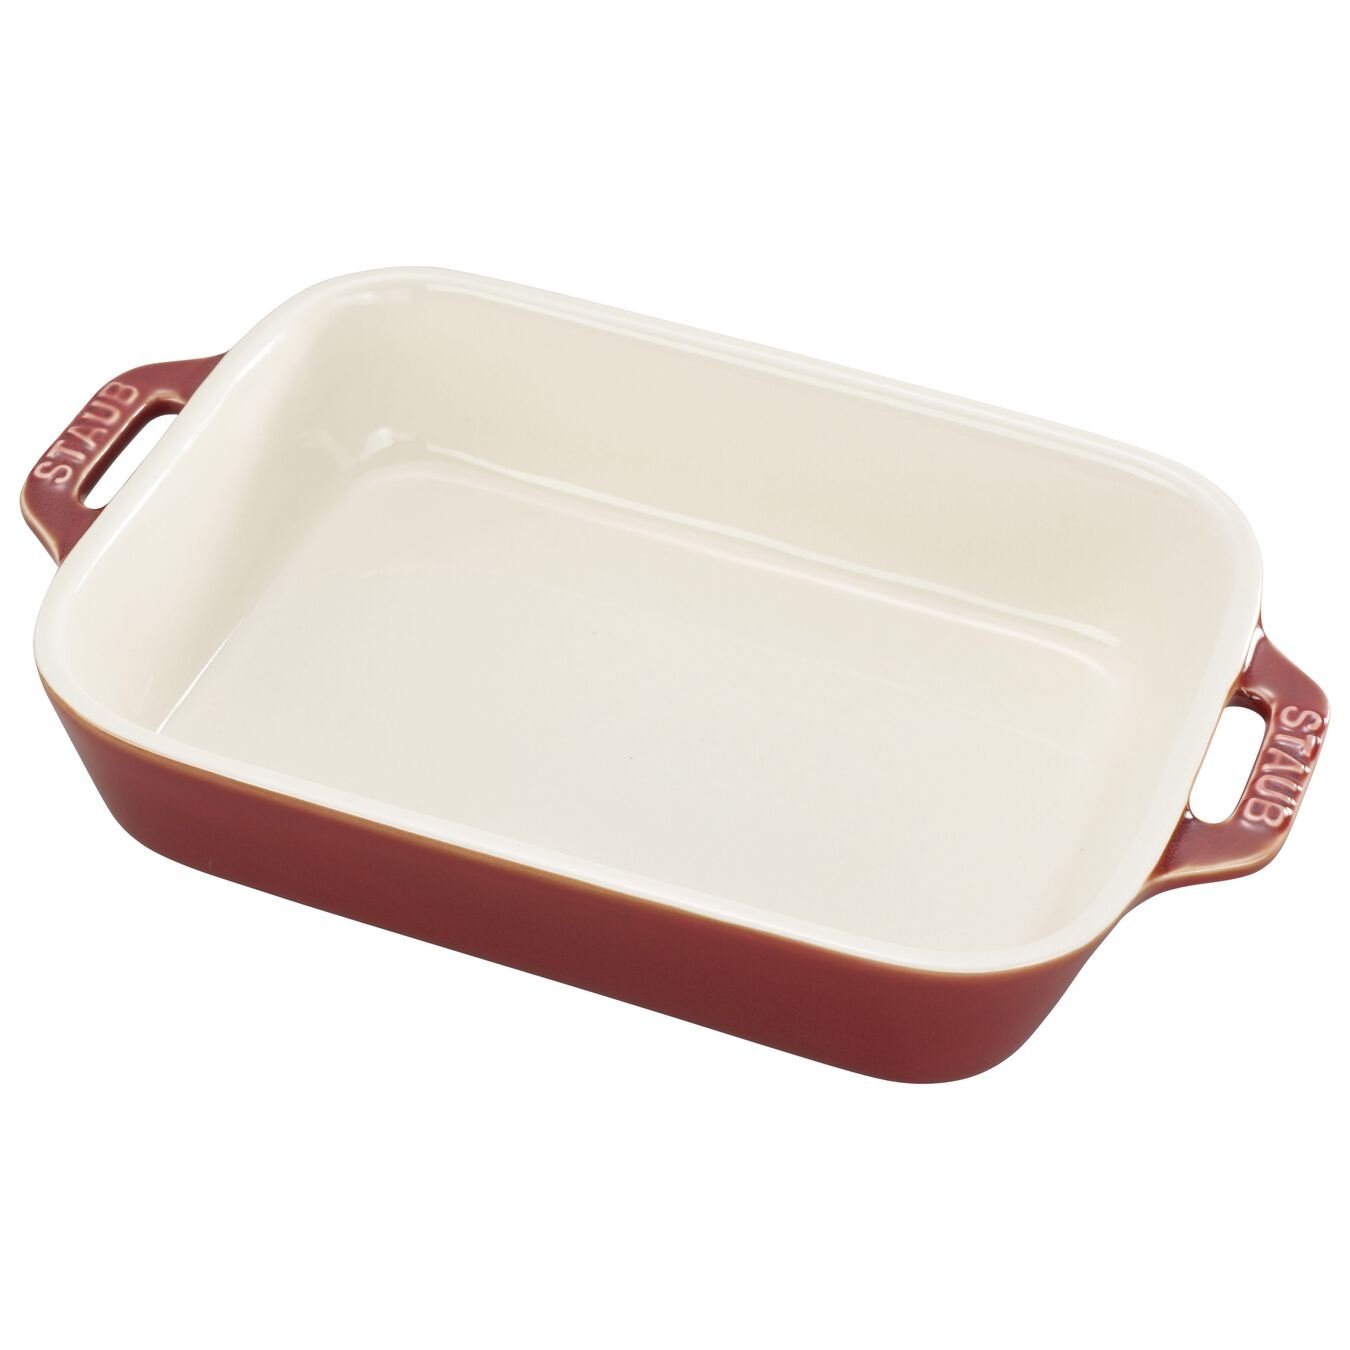 6.3 x 8-inch, rectangular, Oven dish, rustic red,,large 1